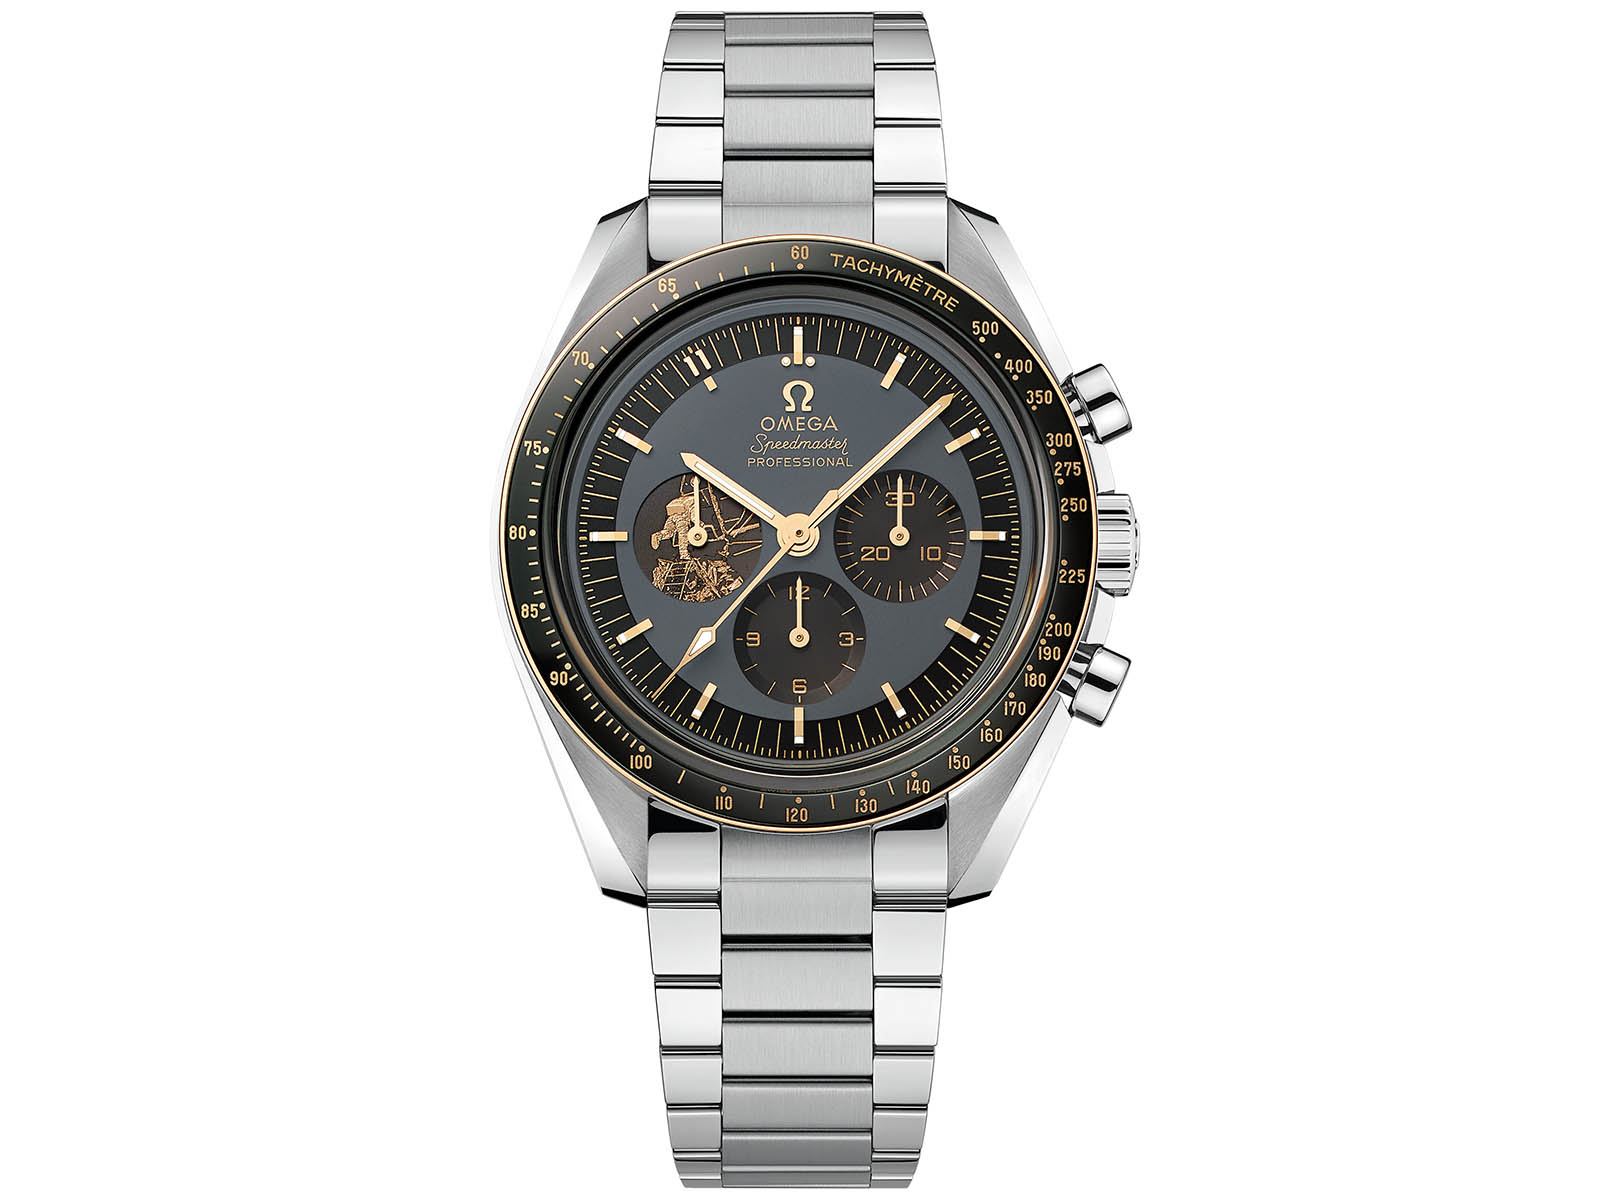 310-20-42-50-01-001-omega-speedmaster-apollo-11-50th-anniversary-limited-edition-3.jpg